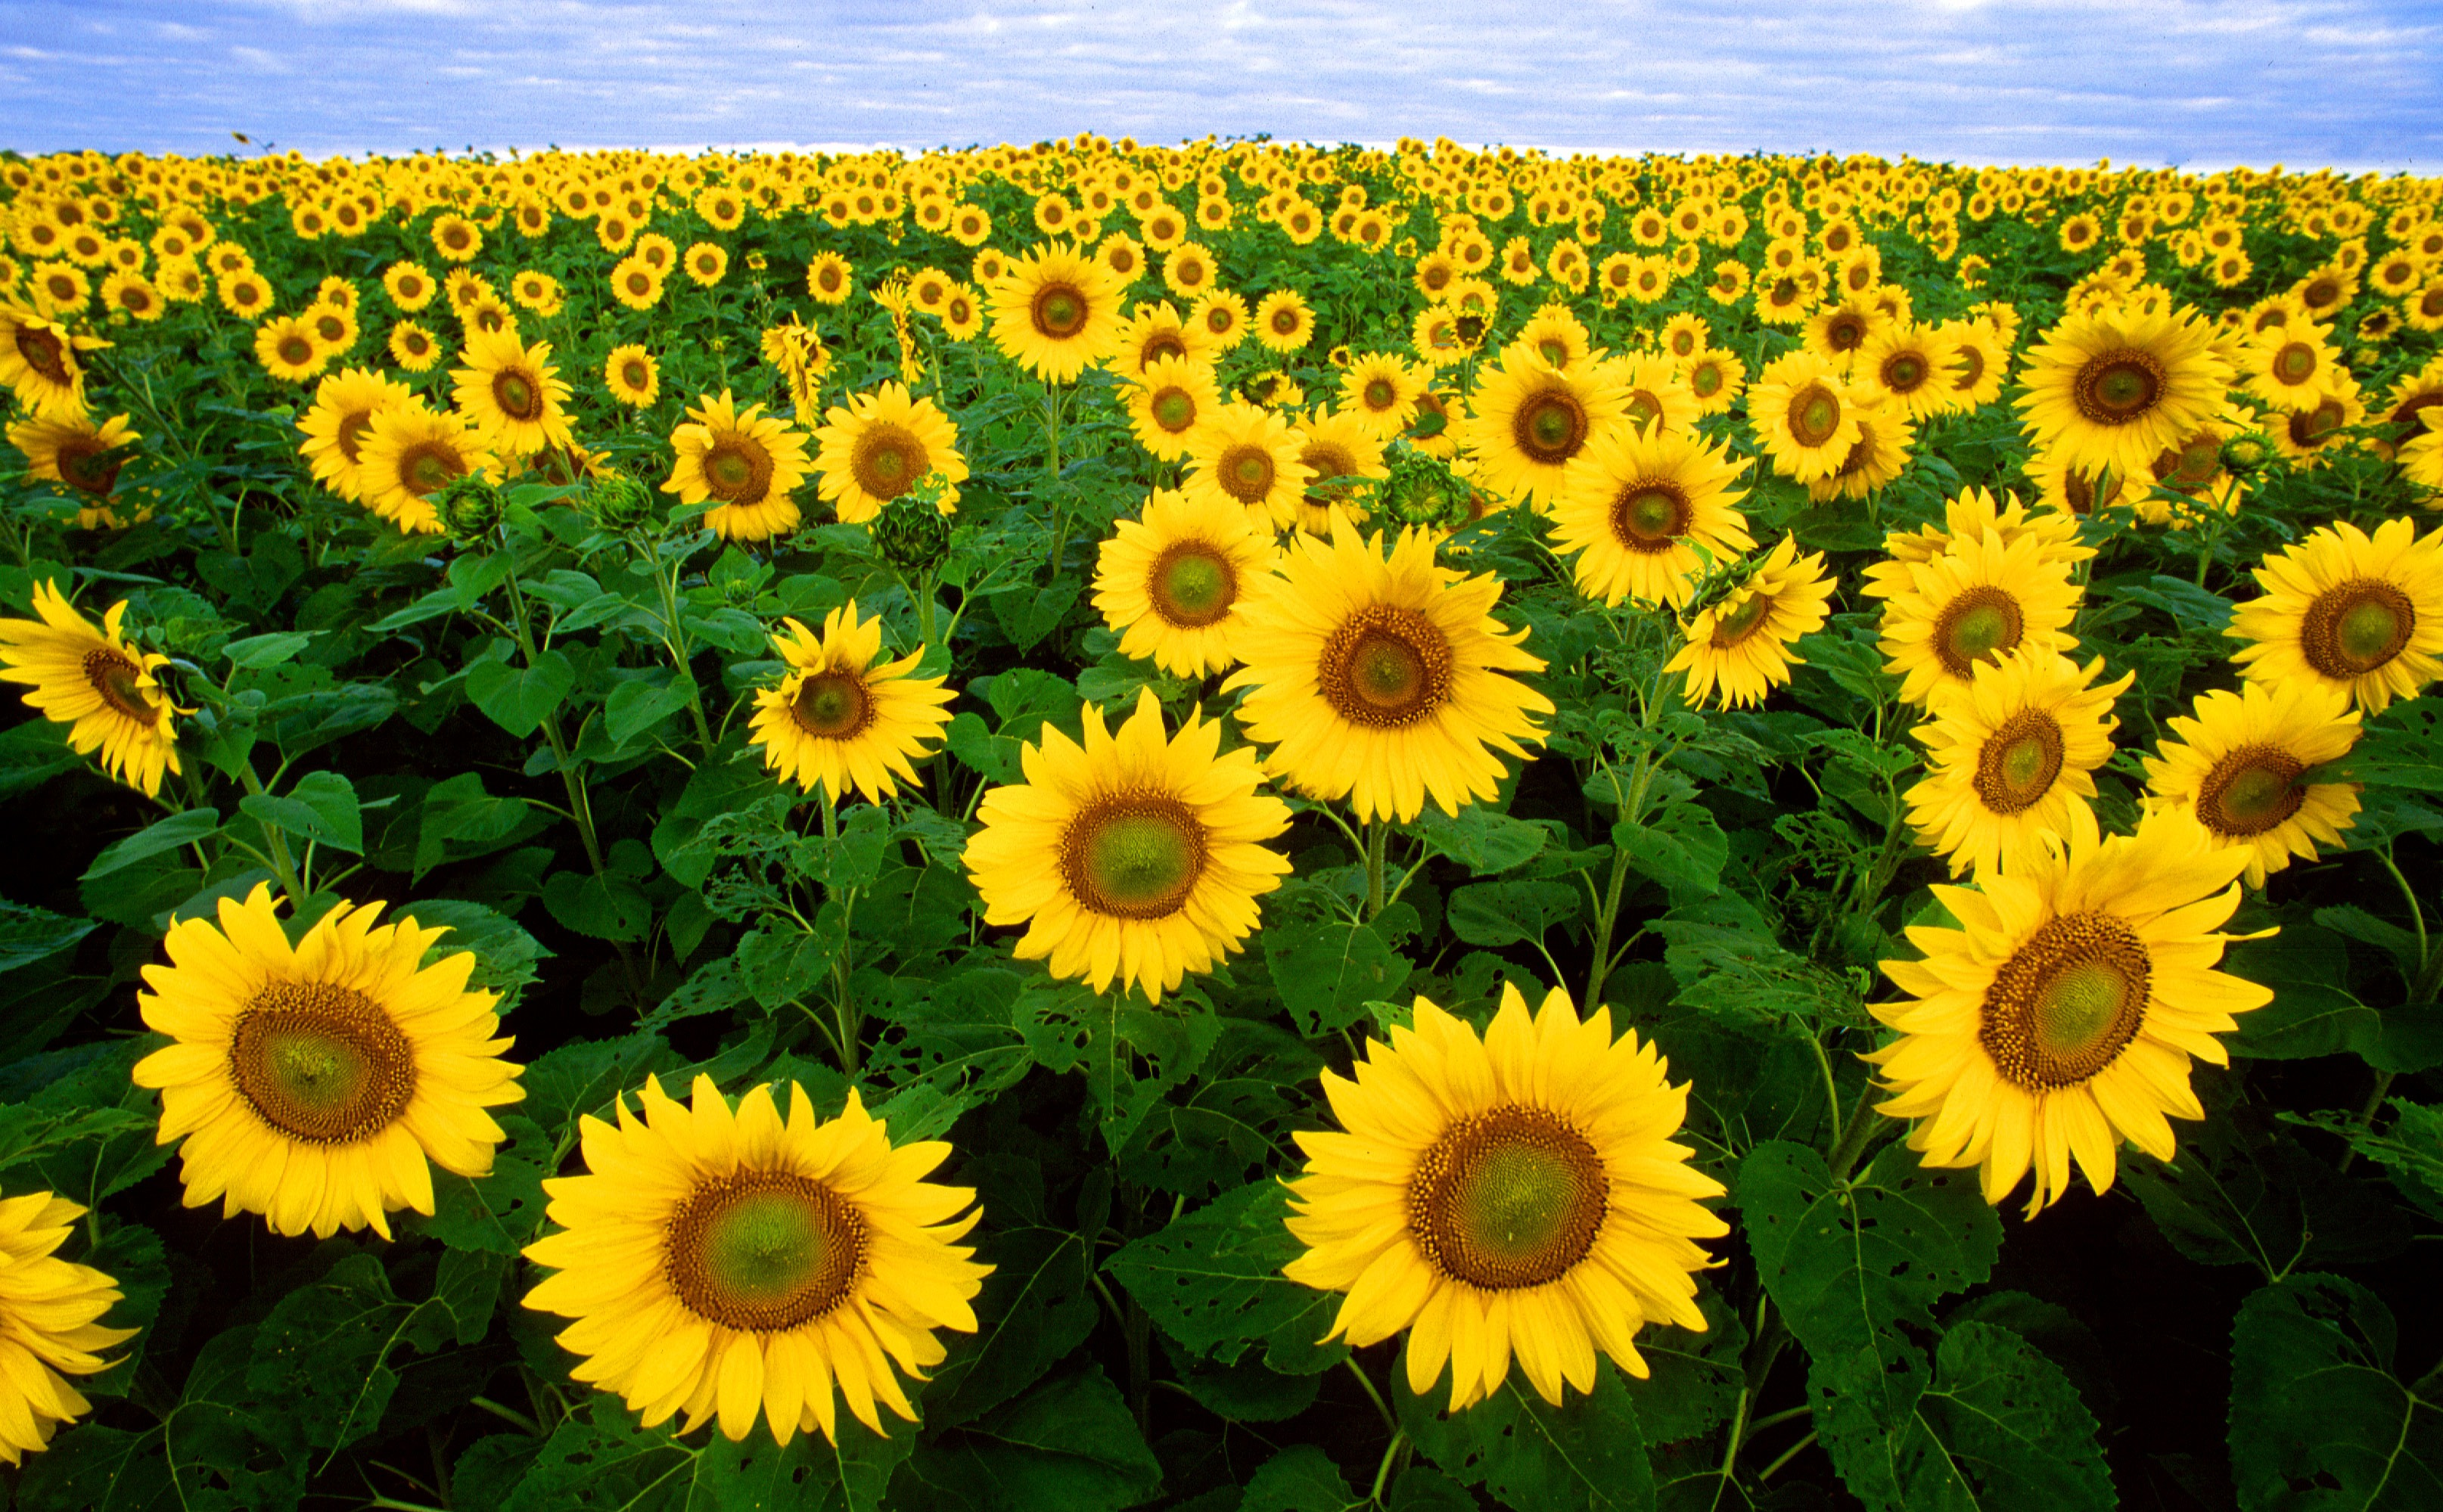 sunflower-sunflower-field-flora-field-87056.jpeg